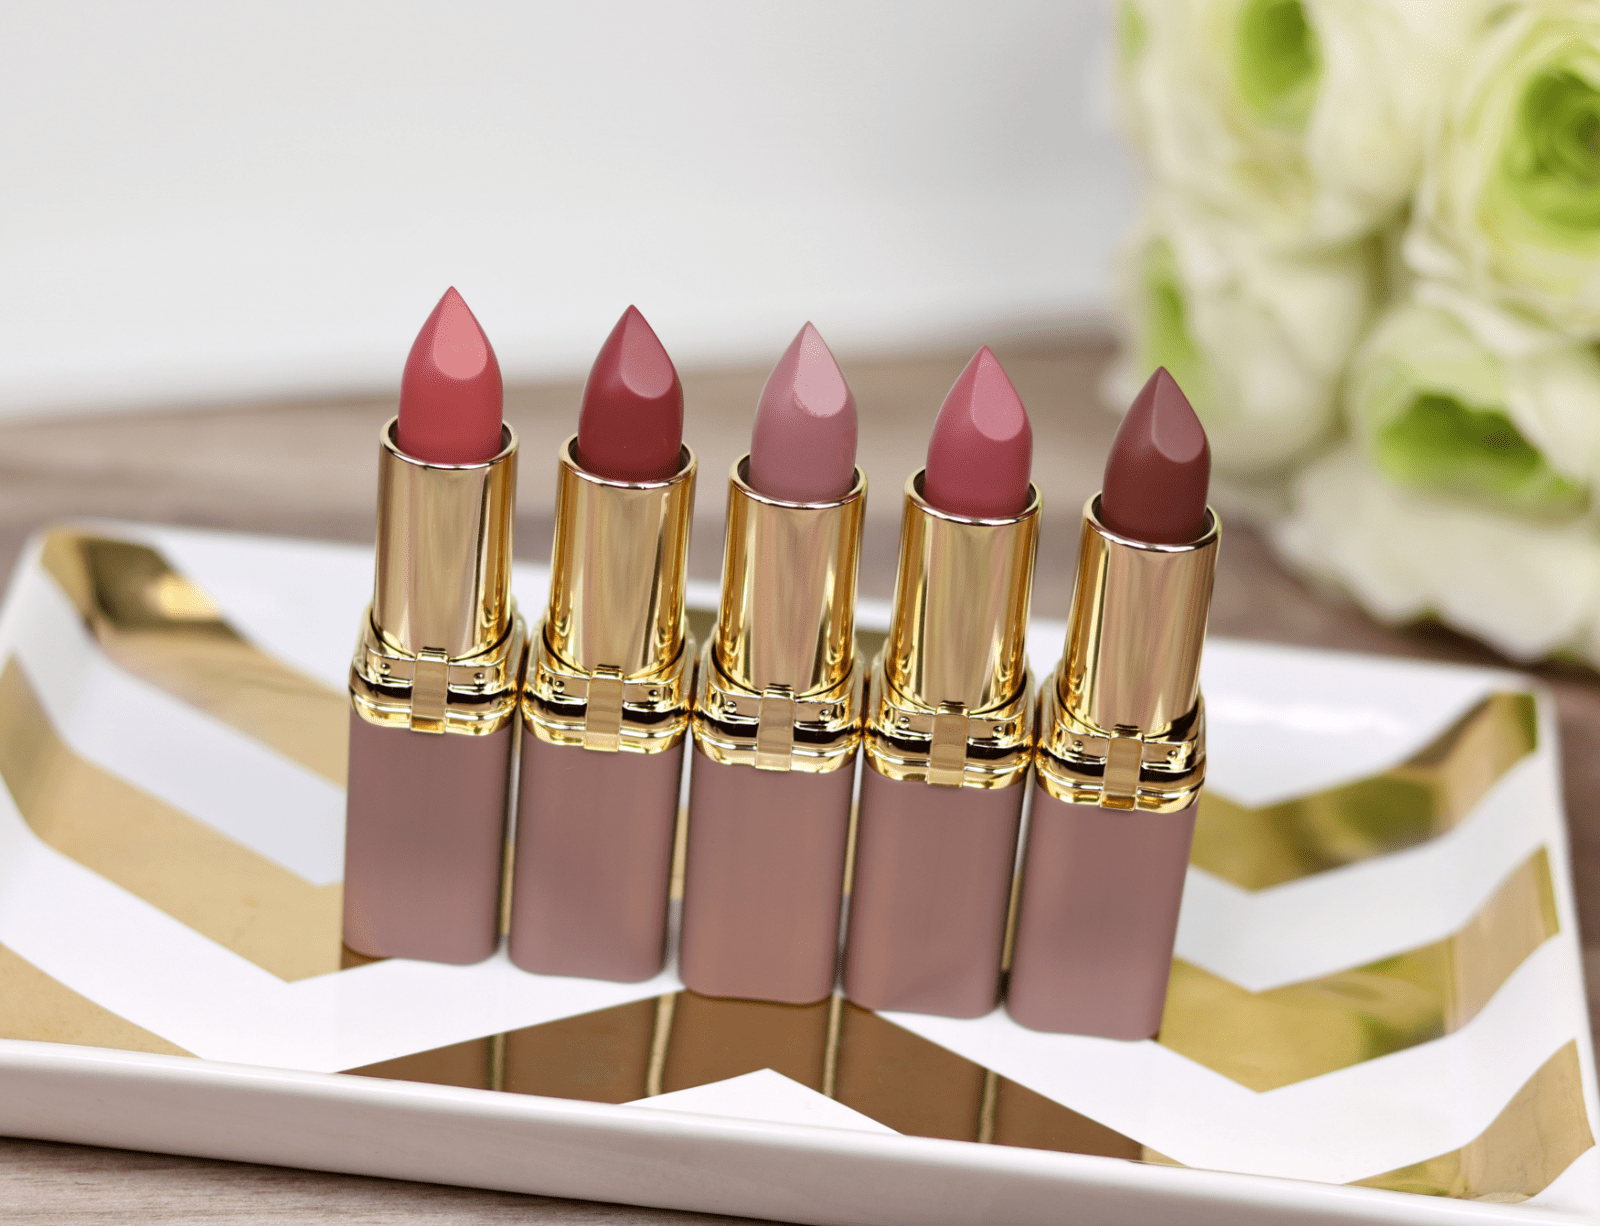 Nude Matte Lipstick   How to Apply Nude Lipstick- Step by